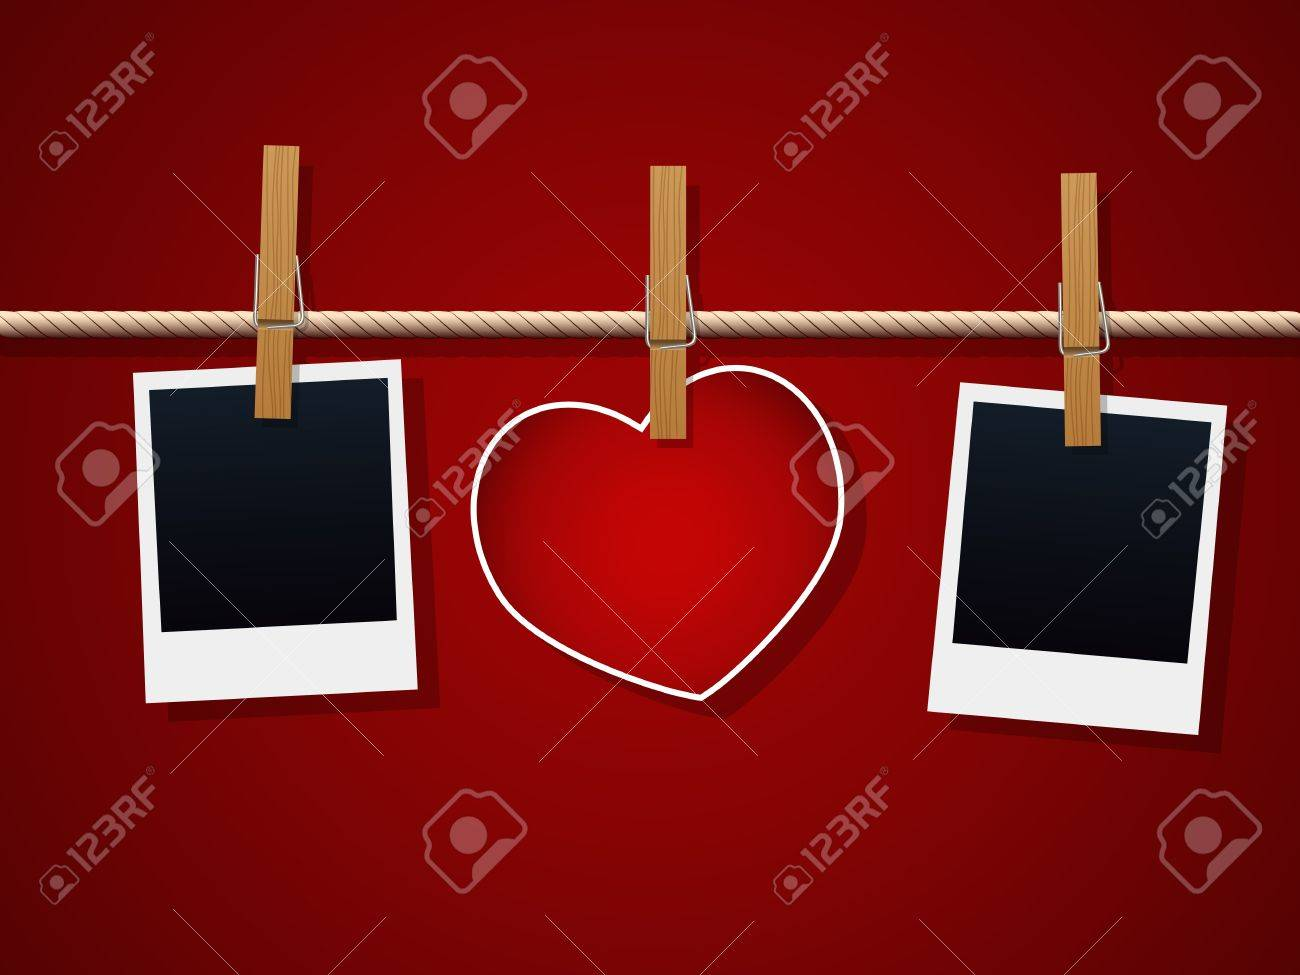 Photo Frames And Heart On Rope - 11916387